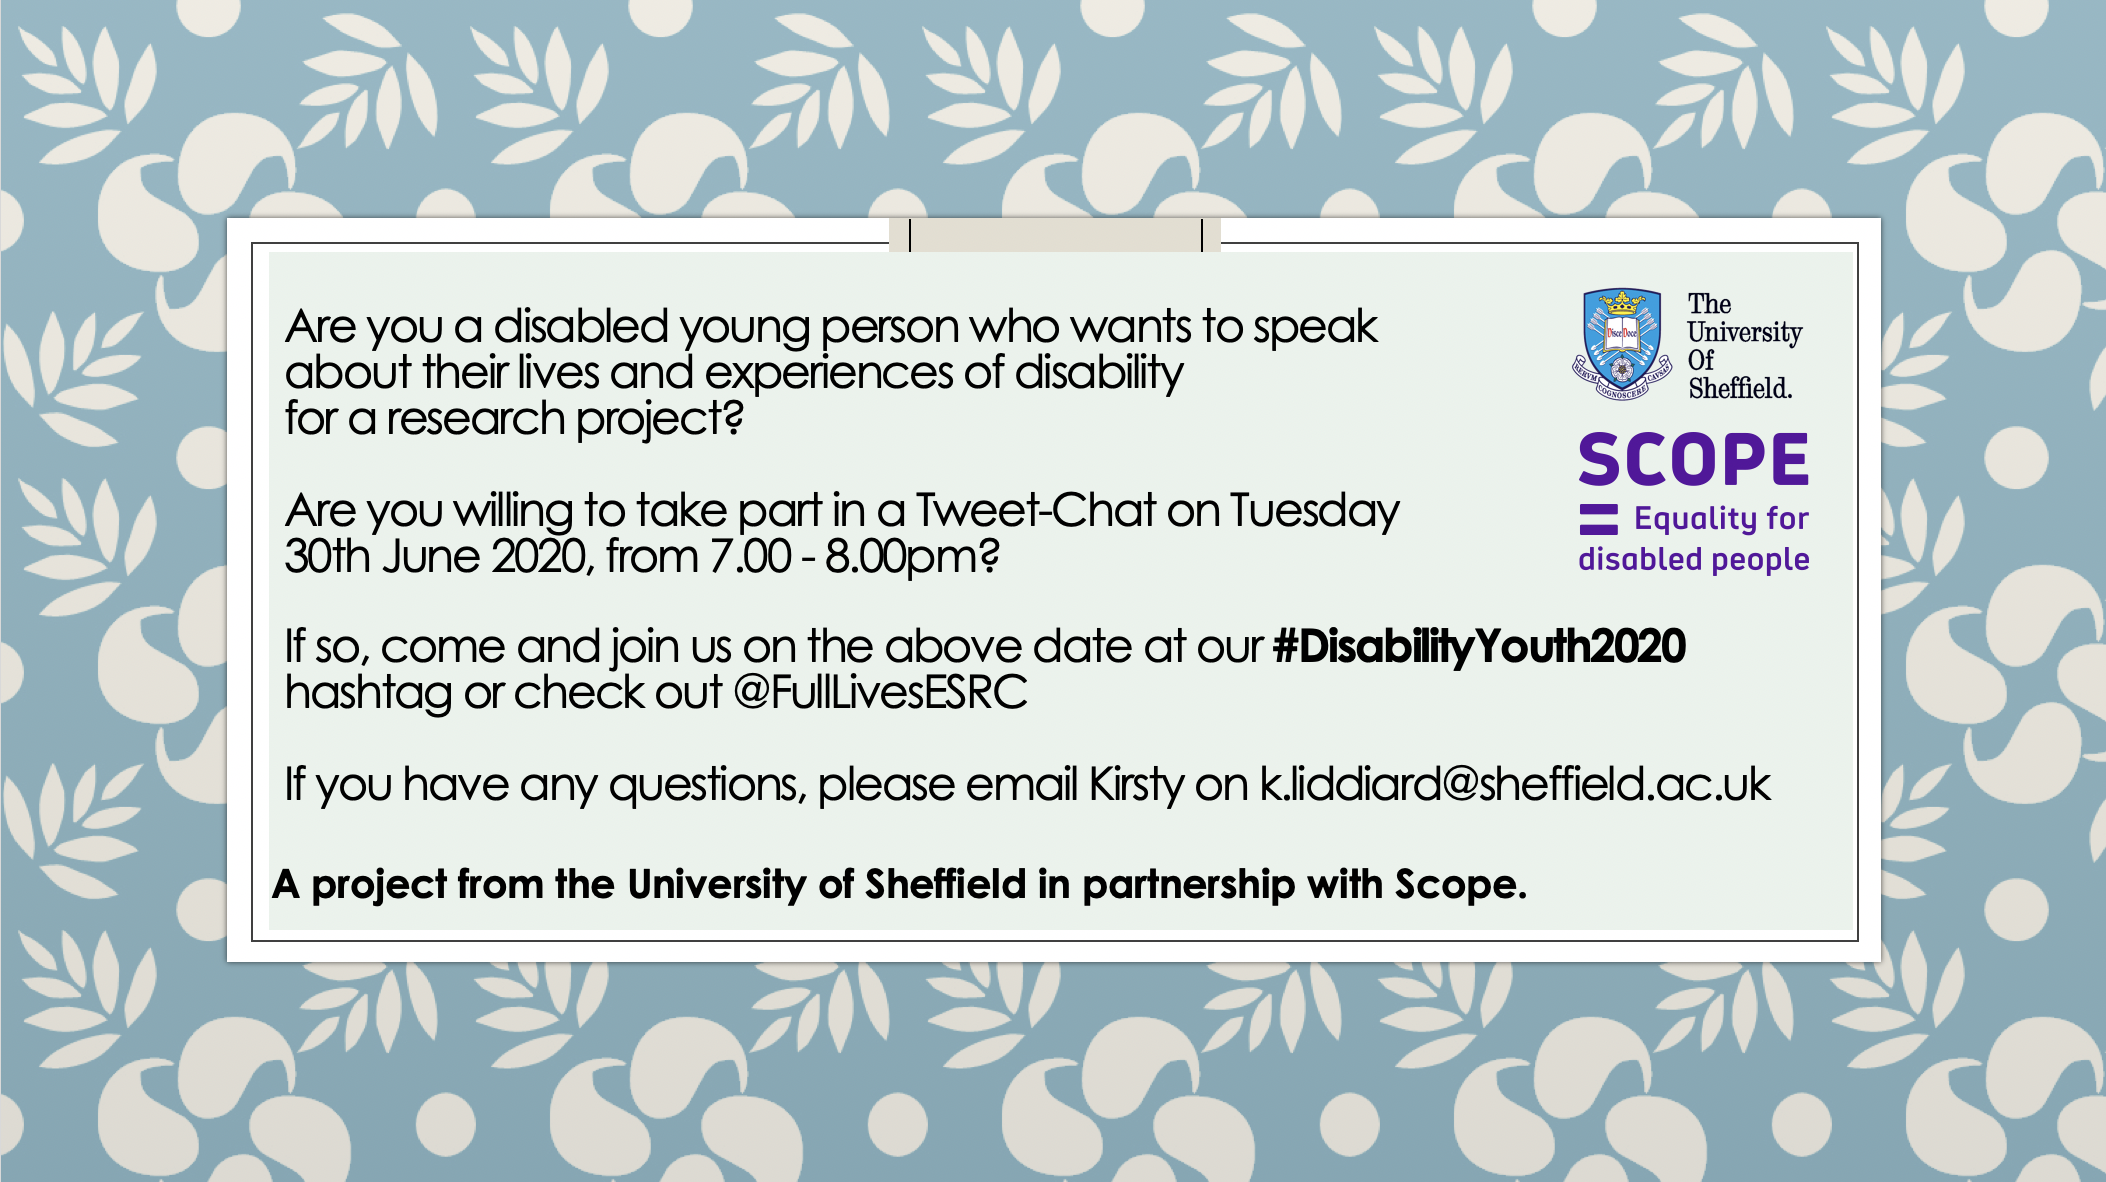 Are you a disabled young person who wants to speak about their lives and experiences of disability for a research project?Are you willing to take part in a Tweet-Chat on Tuesday 30th June 2020, from 7.00 - 8.00pm?If so, come and join us on the above date at our #DisabilityYouth2020 hashtag or check out @FullLivesESRCIf you have any questions, please email Kirsty on k.liddiard@sheffield.ac.uk